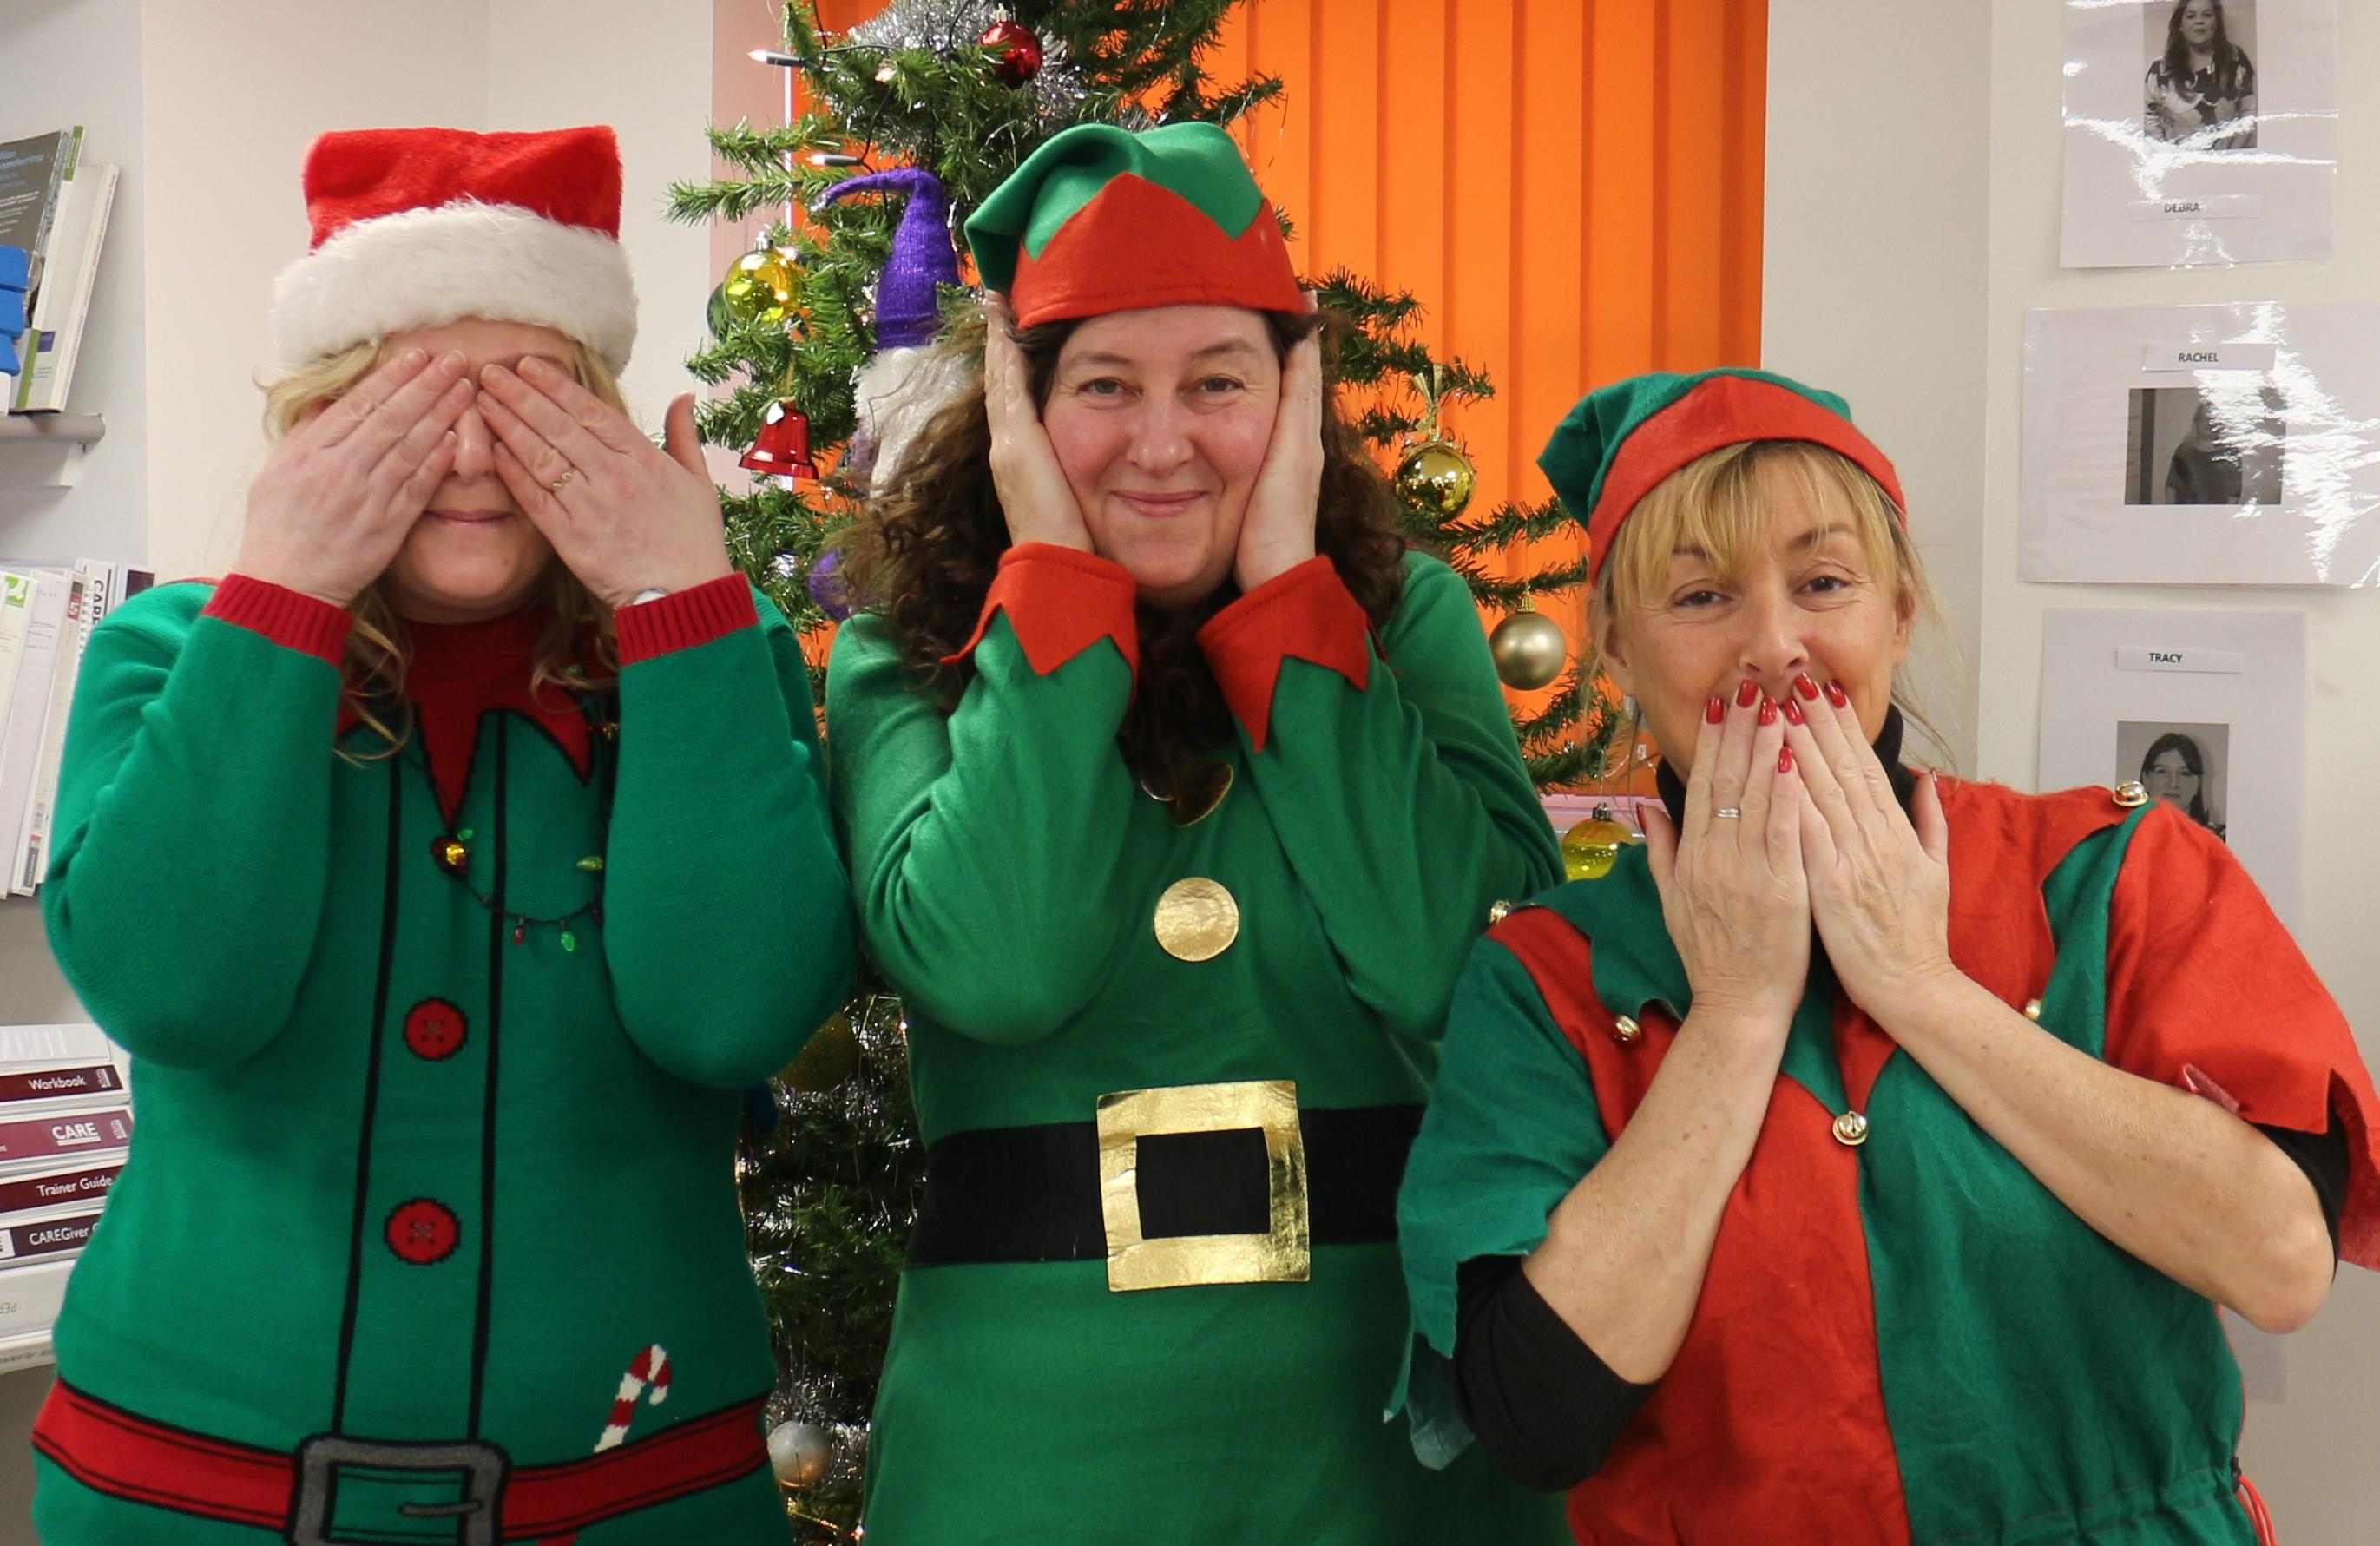 The three wise Elves